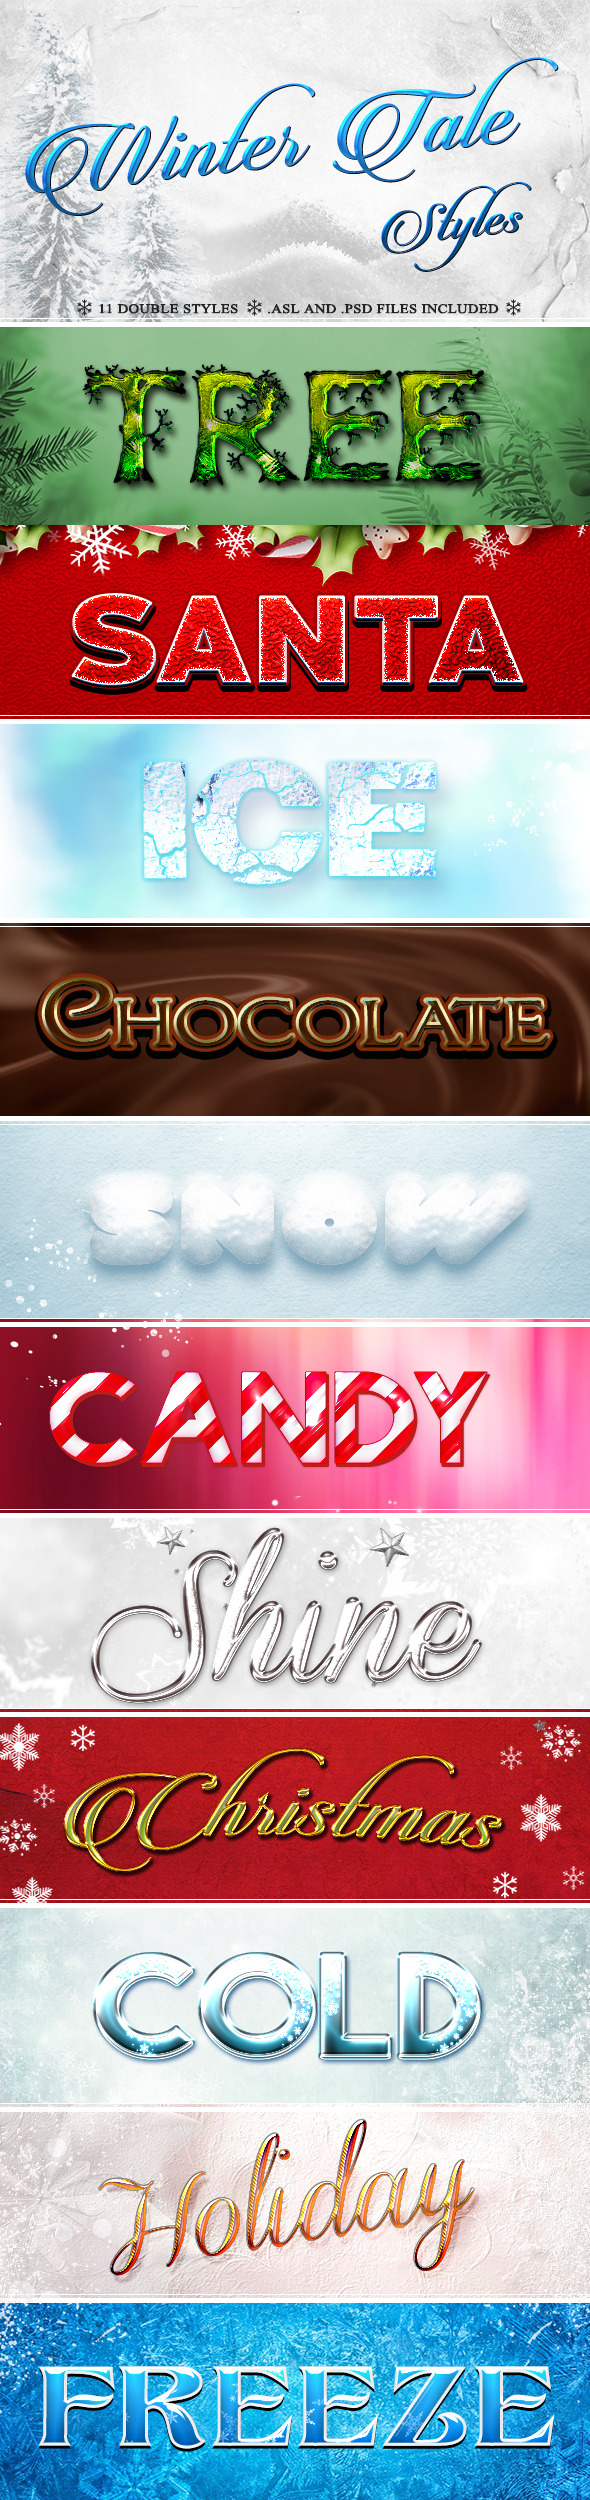 Winter Tale Styles - Text Effects Styles